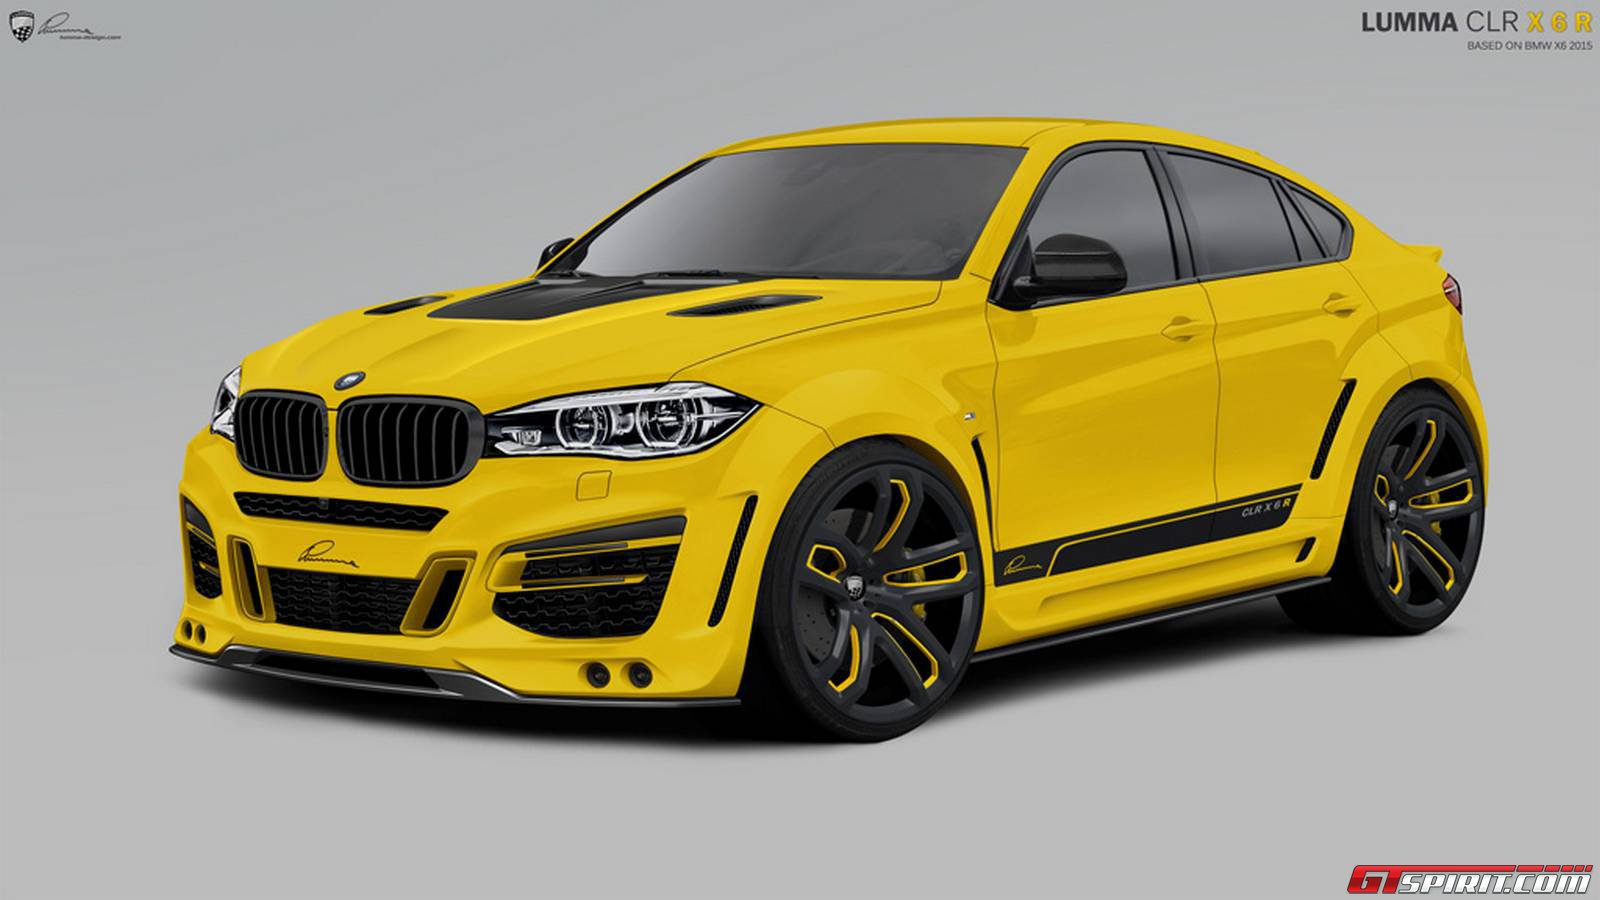 Lumma Design Clr Bmw X6 R Previewed Gtspirit